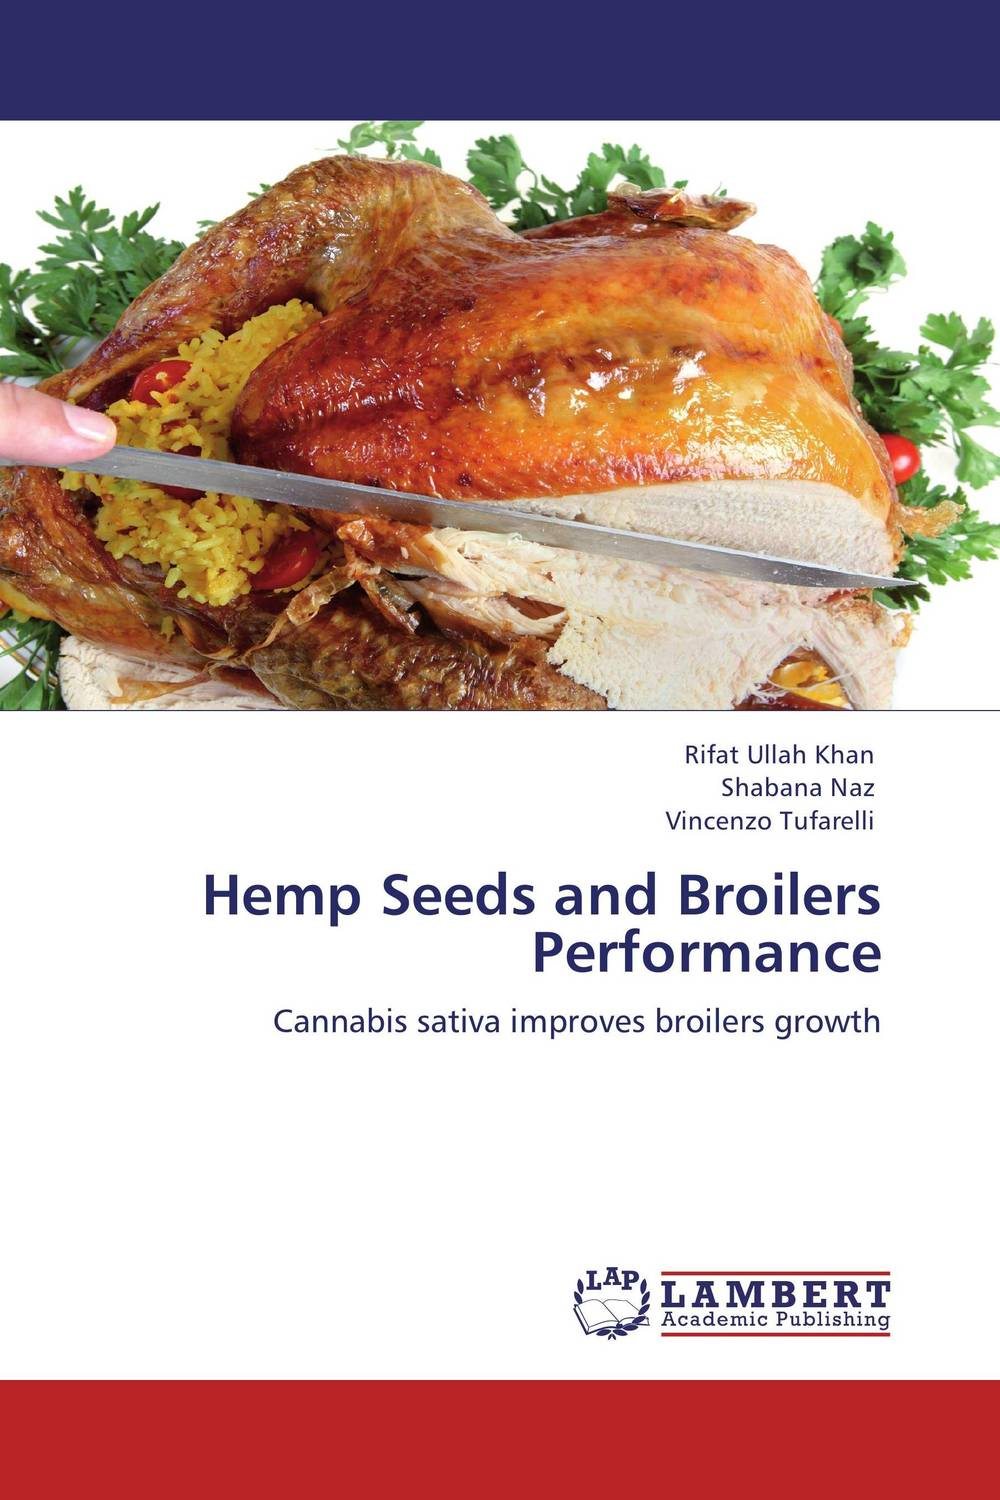 Hemp Seeds and Broilers Performance b p r d hell on earth volume 6 the return of the master